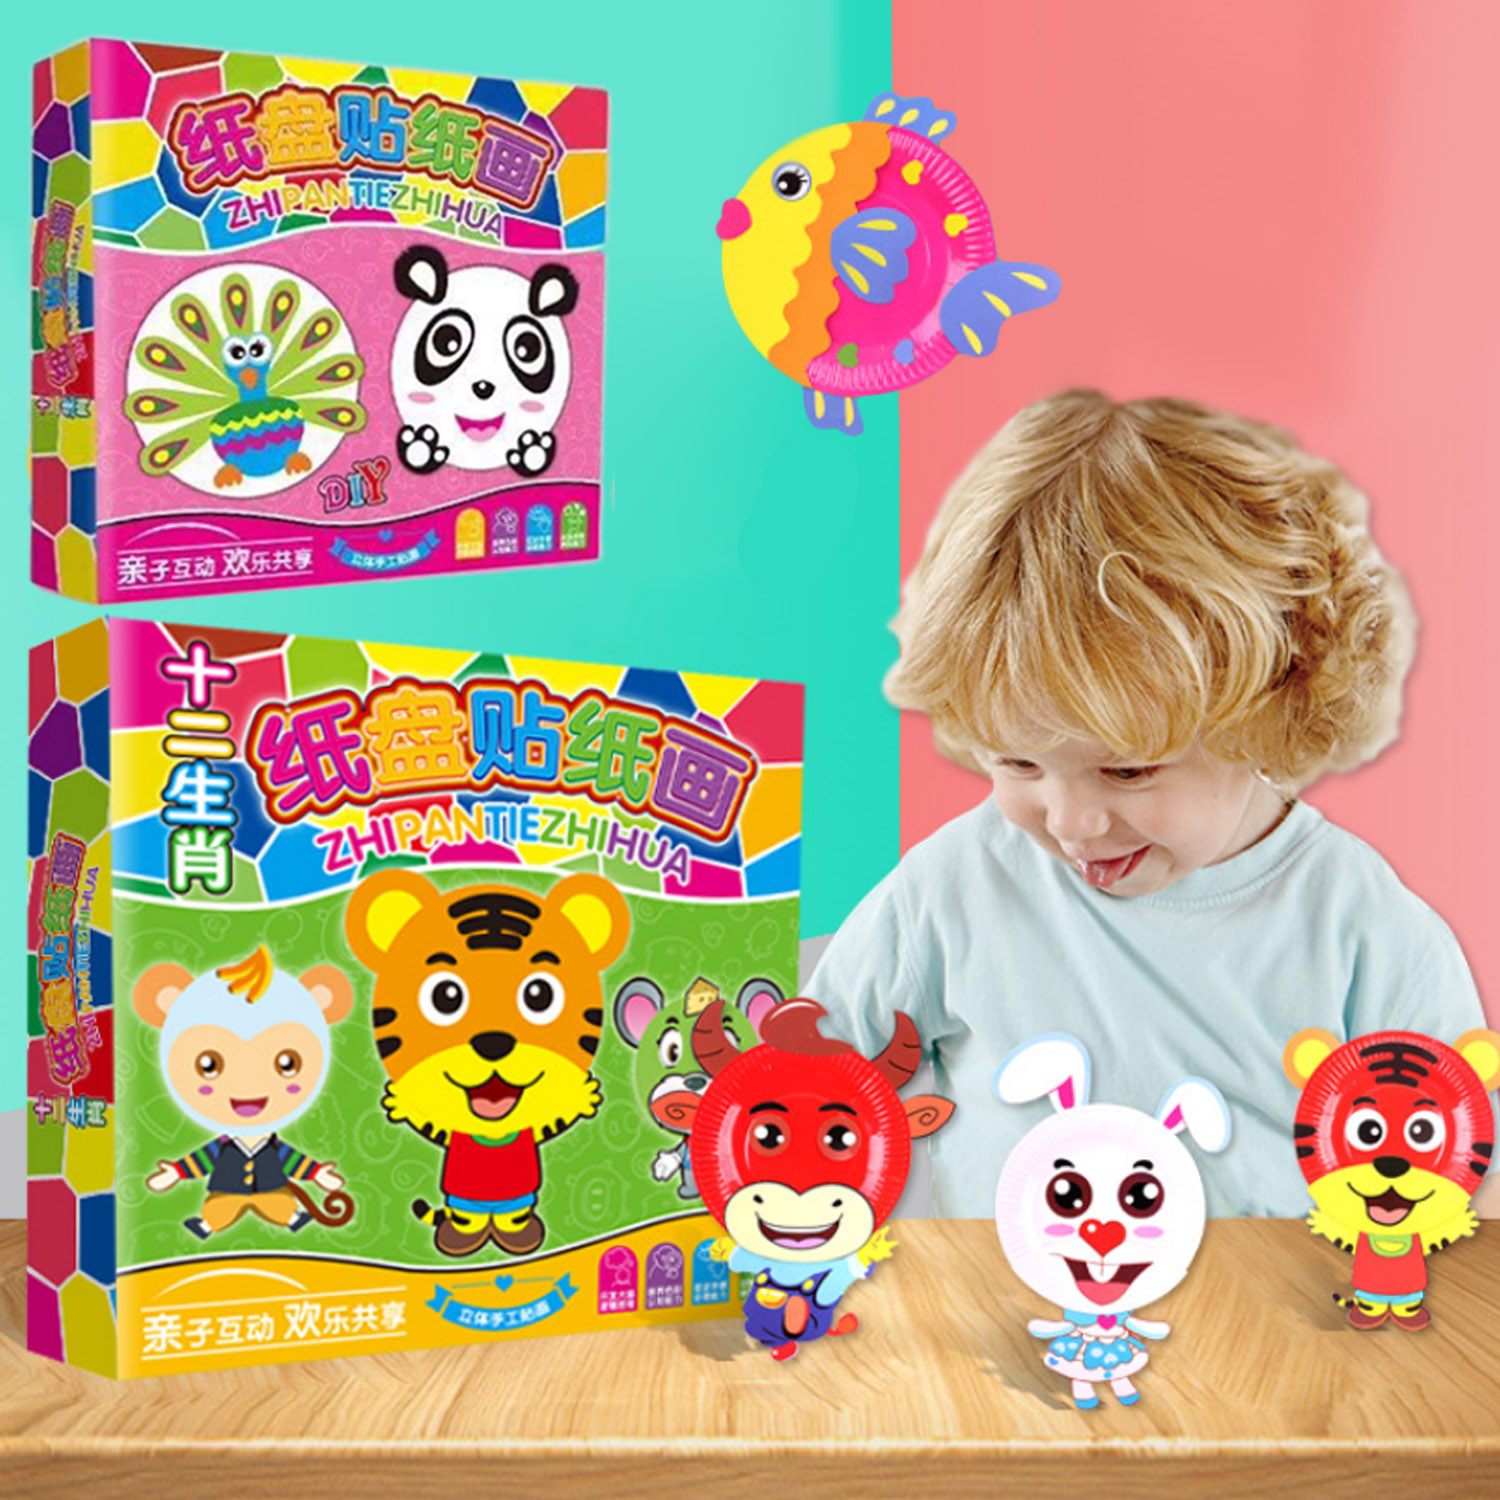 12PCA DIY Cute Cartoon Animal Paper Plate Stickers Art Kit Early Educational Toy For Kids Children Party Favors School Project